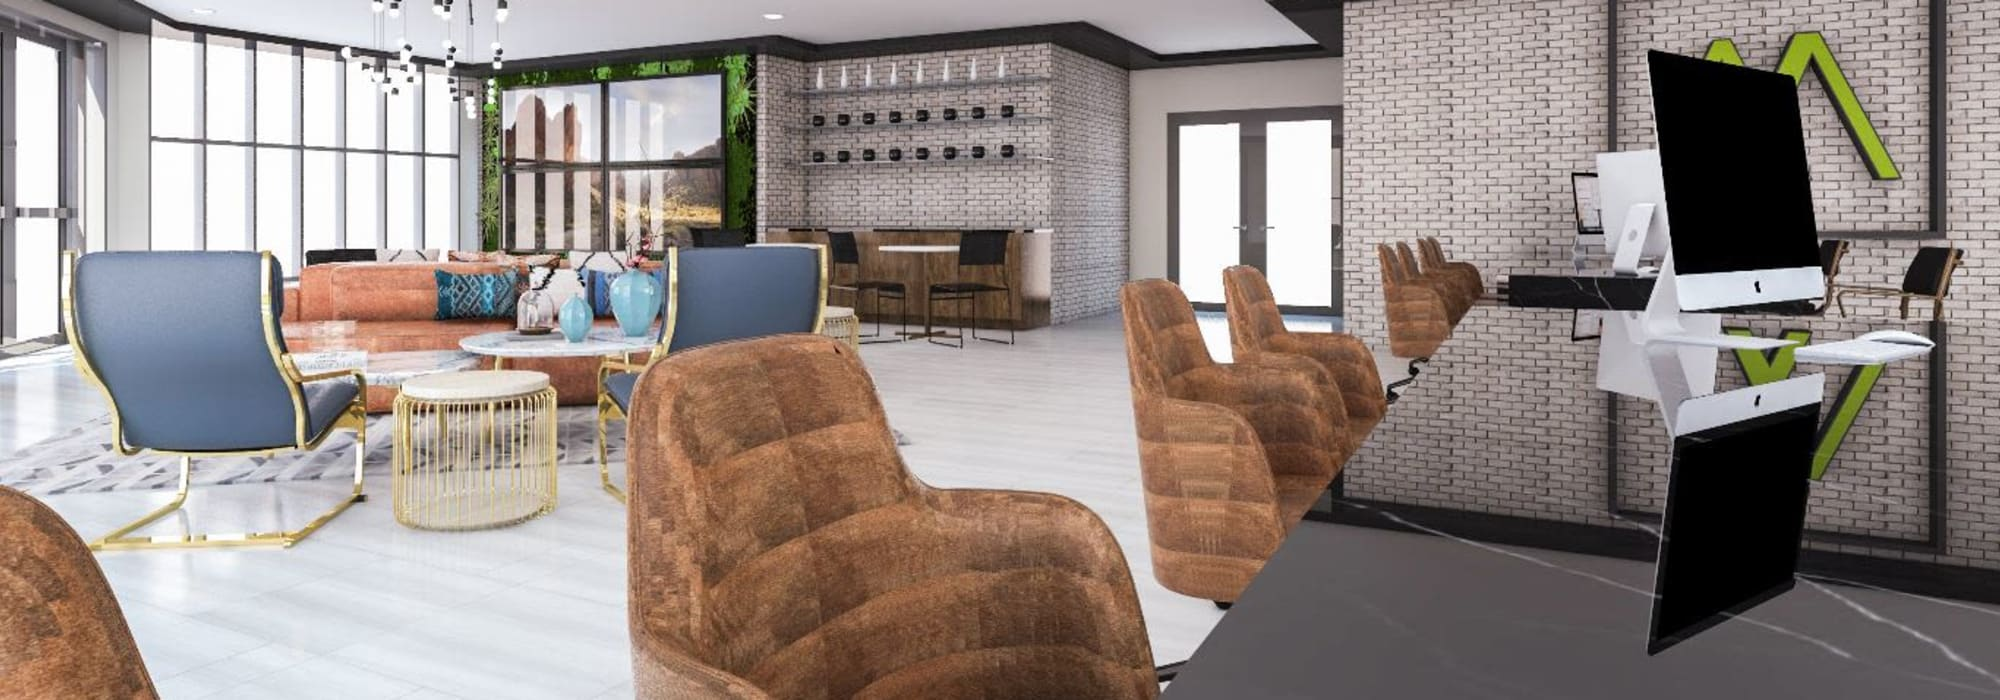 Modern leasing office with great seating options at Tempe Metro in Tempe, Arizona